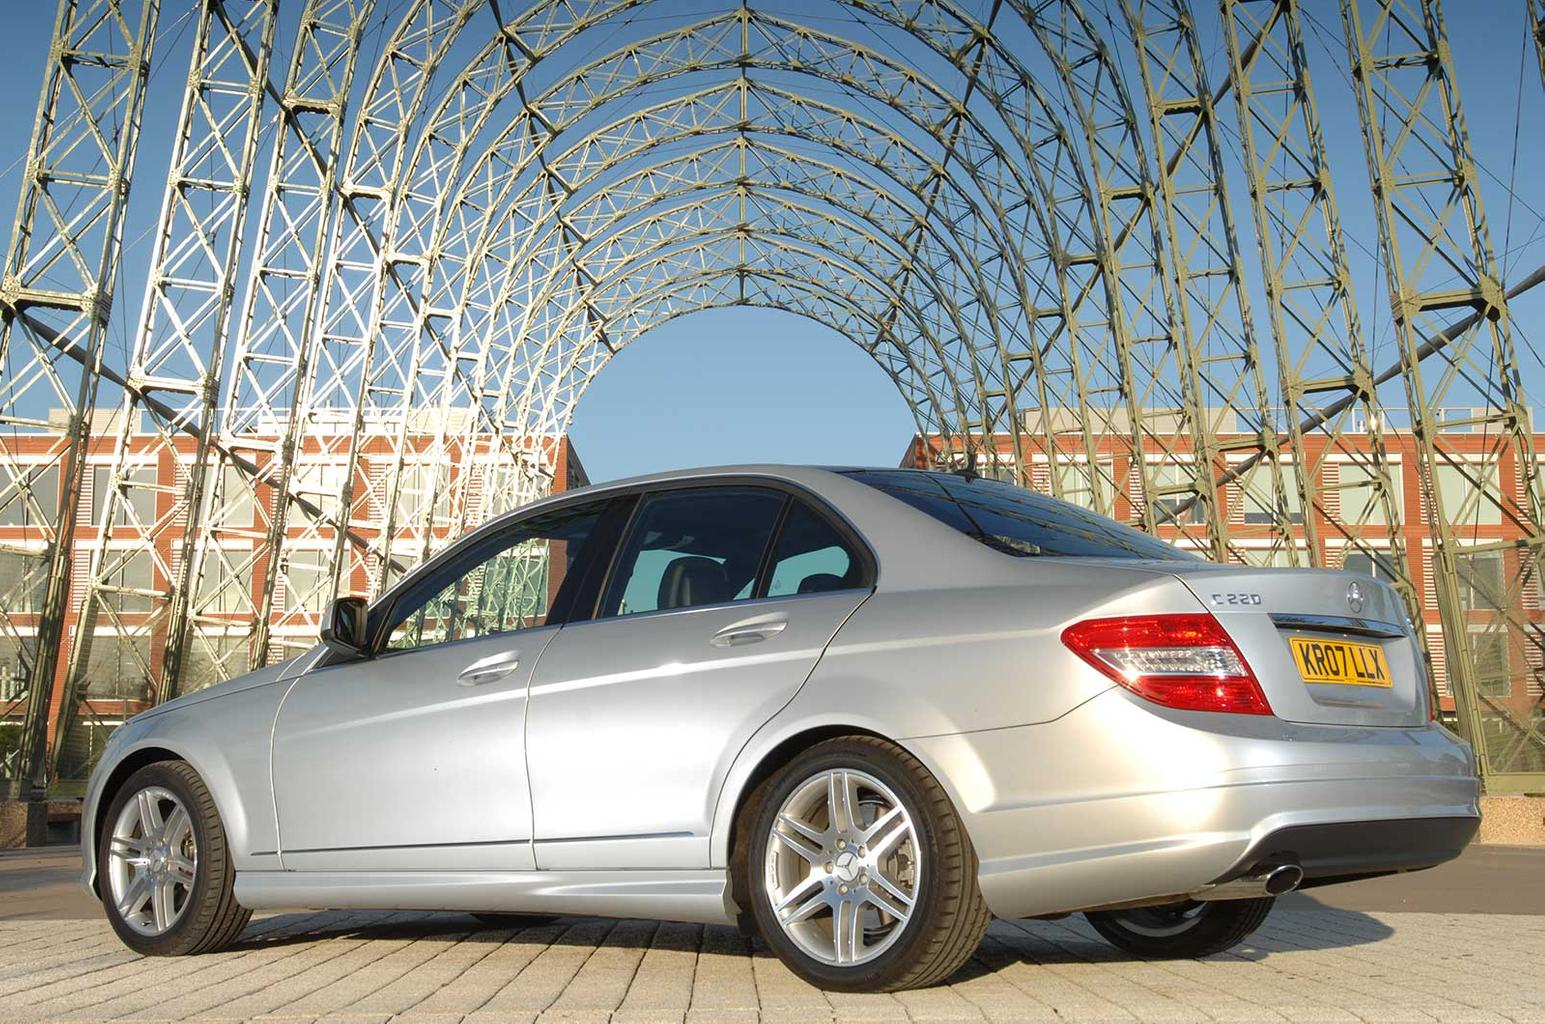 Used car of the week: Mercedes C-Class